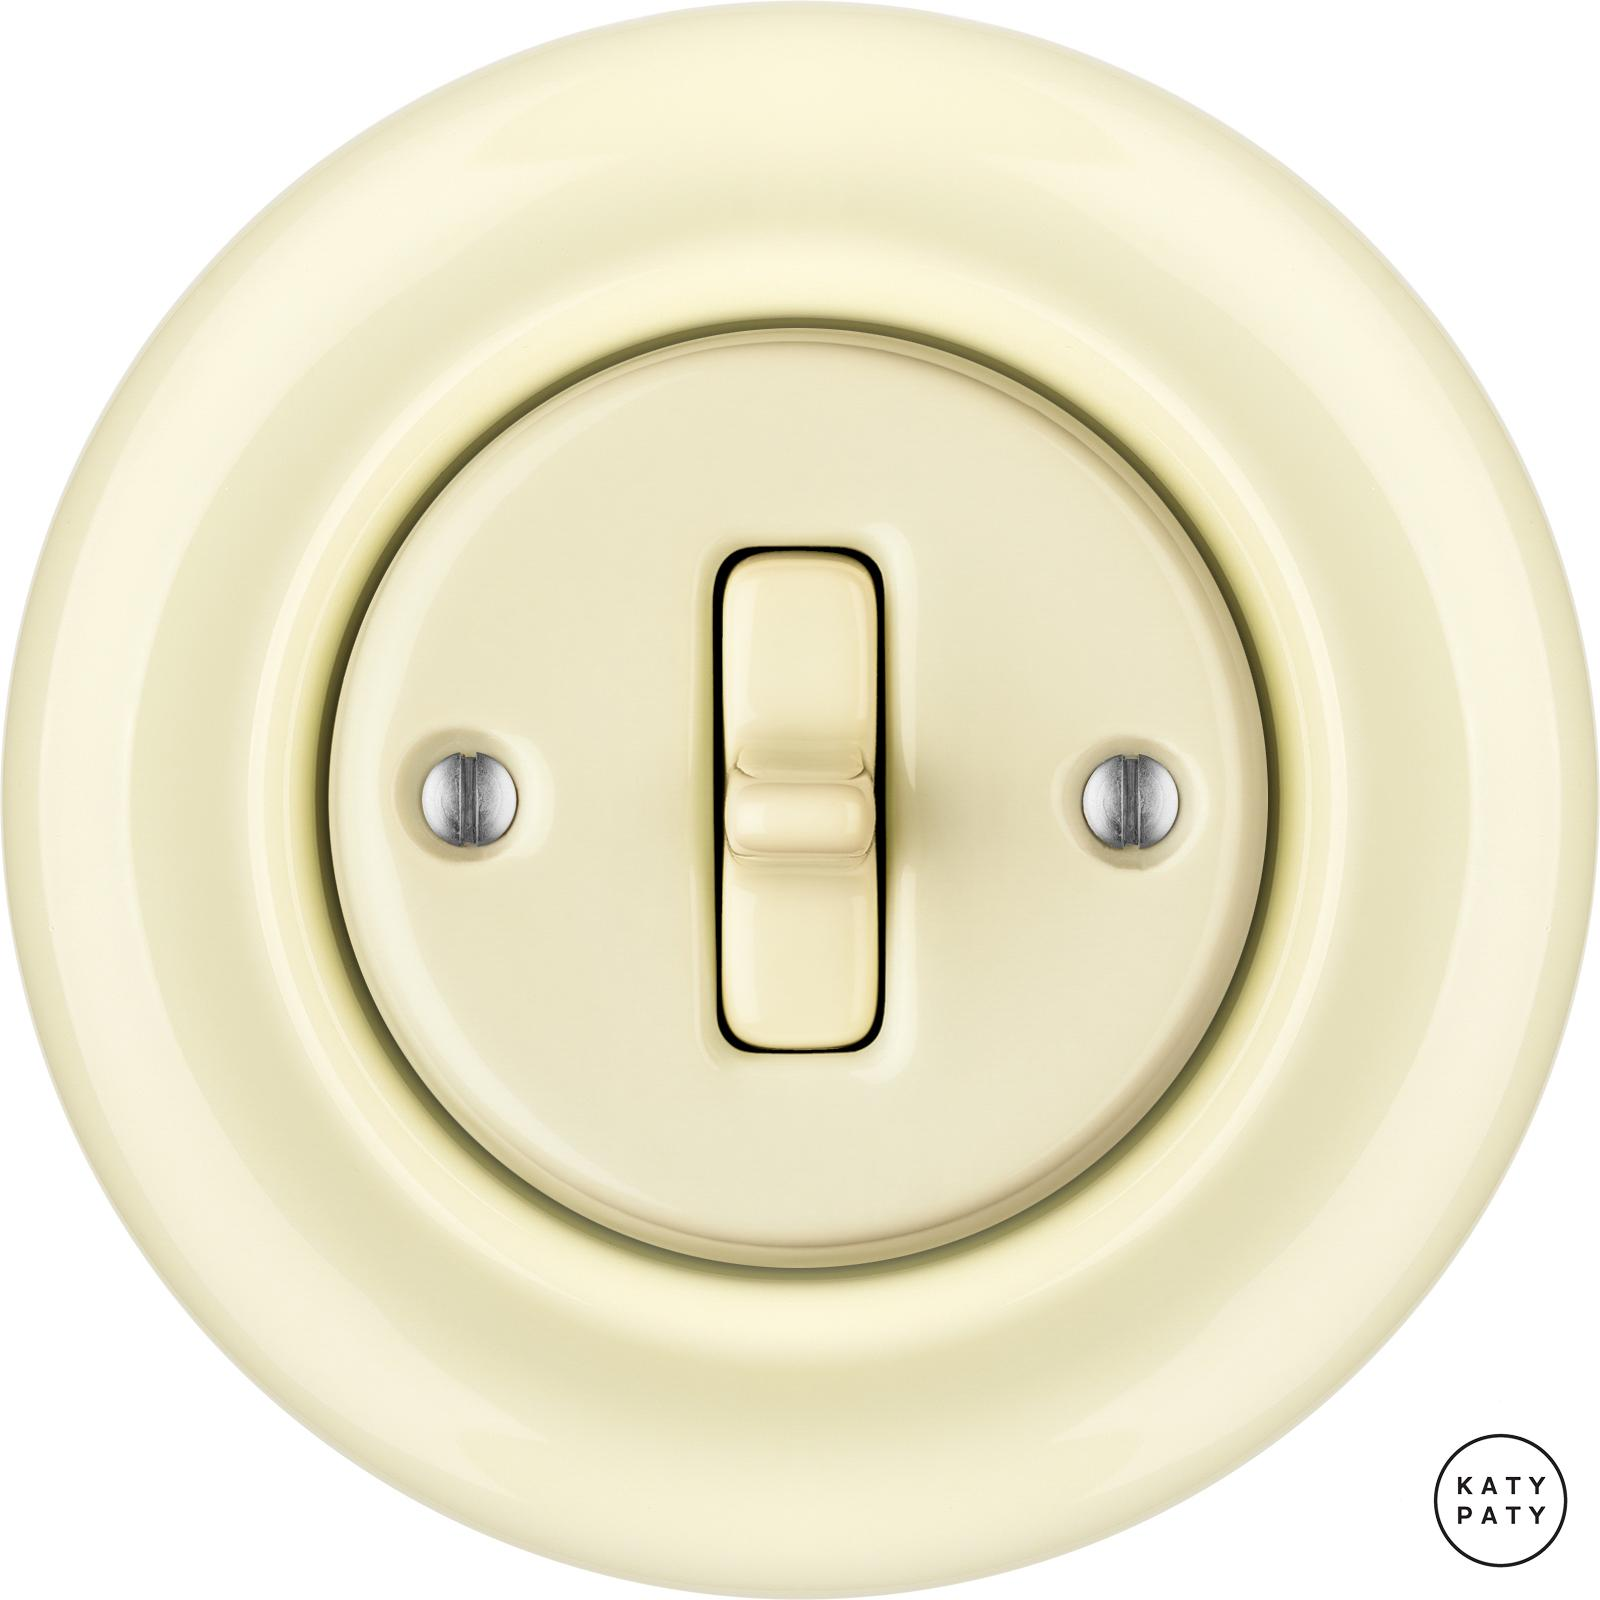 Porcelain Toggle switches - 1 gang ()  - PNOE FLAVA | Katy Paty